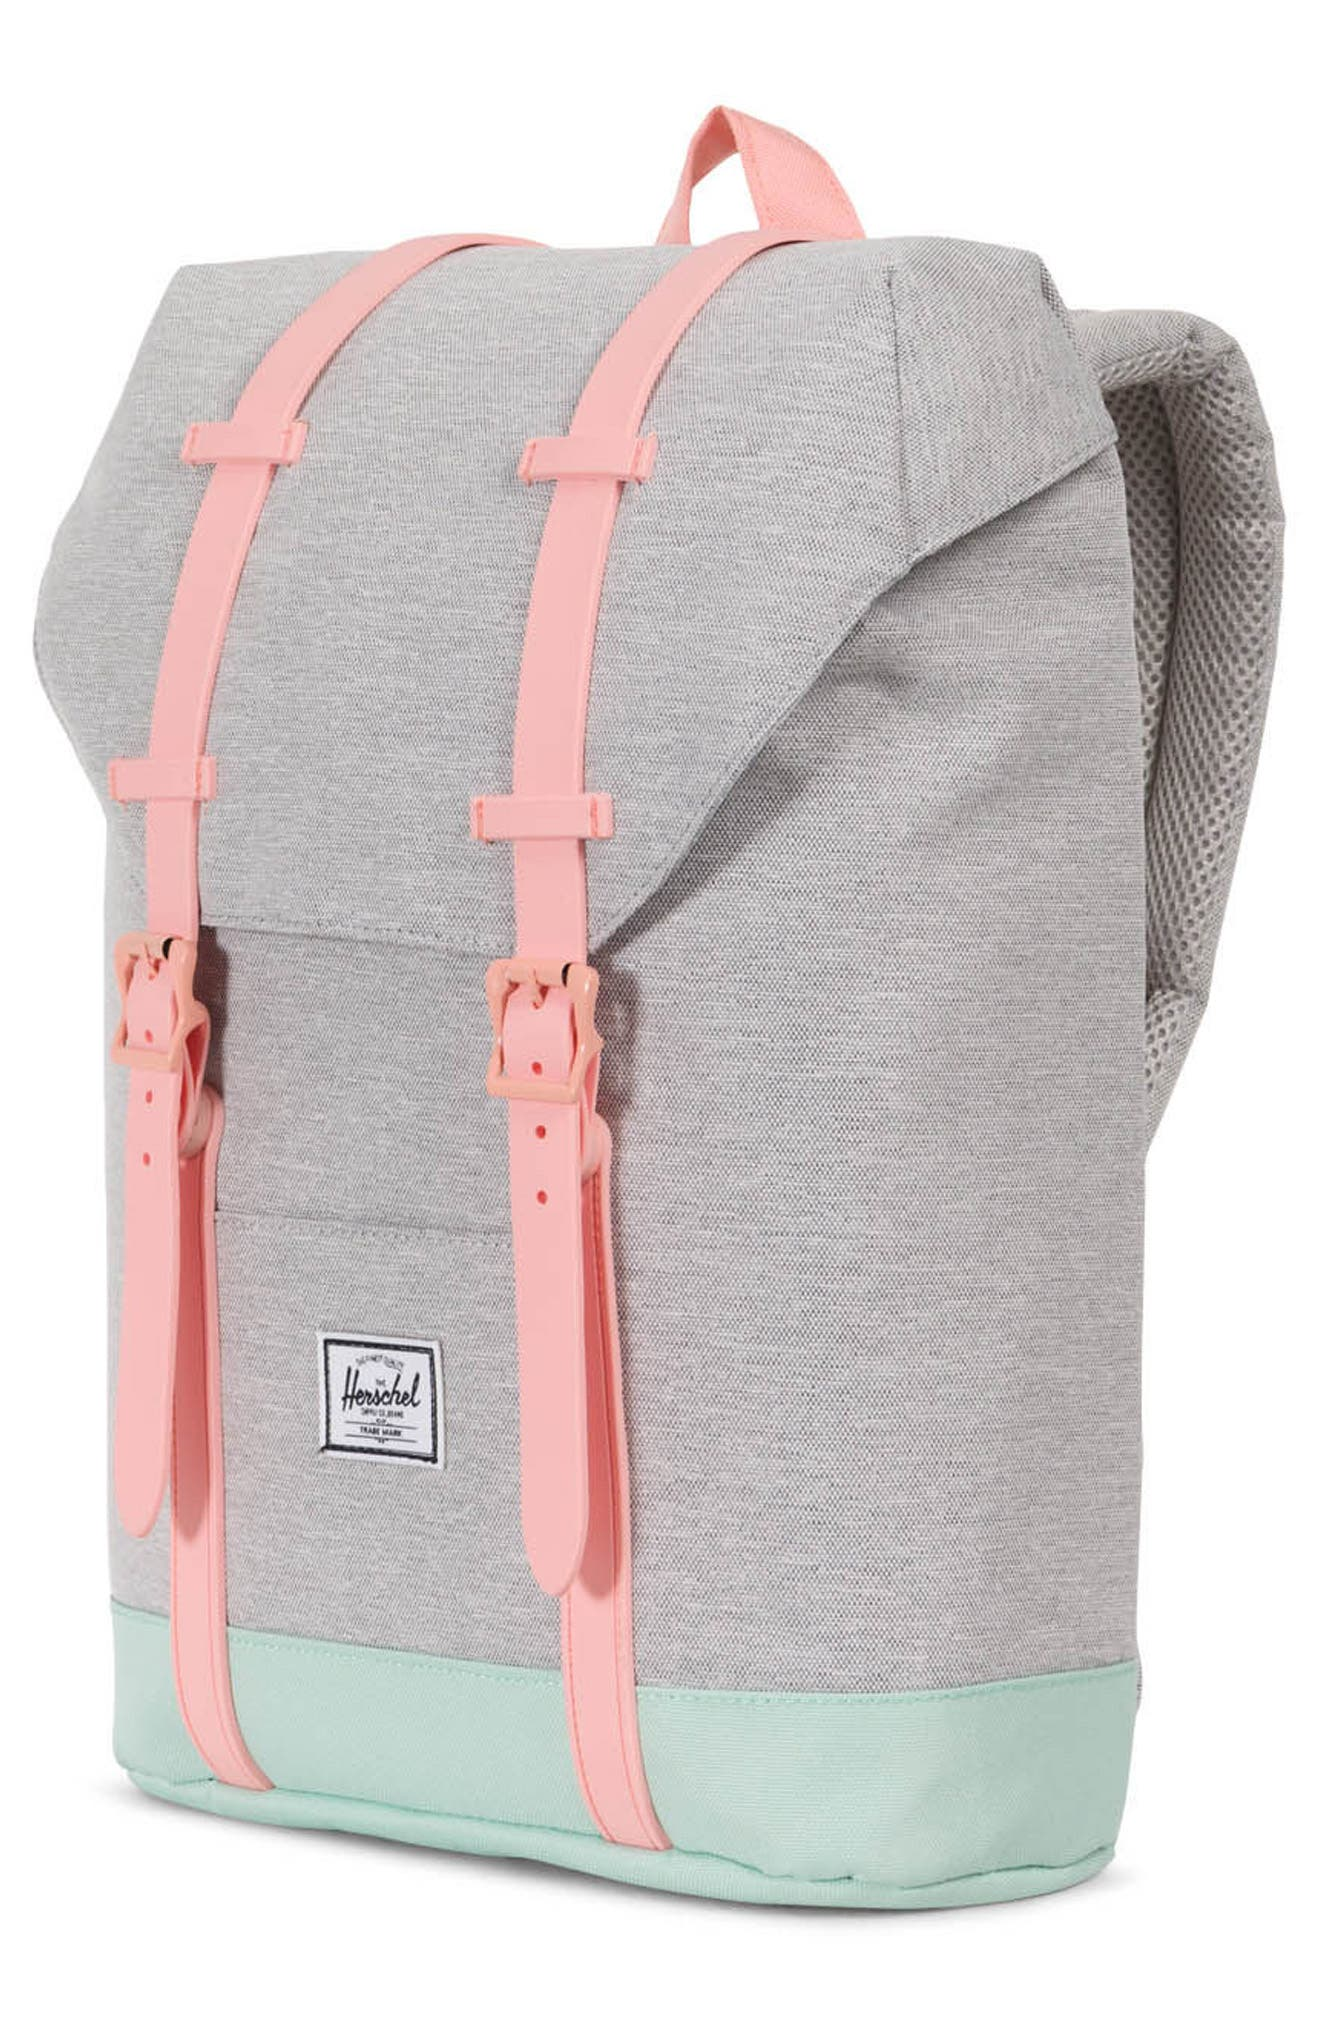 Retreat Backpack,                             Alternate thumbnail 4, color,                             Light Grey/ Yucca/ Peach